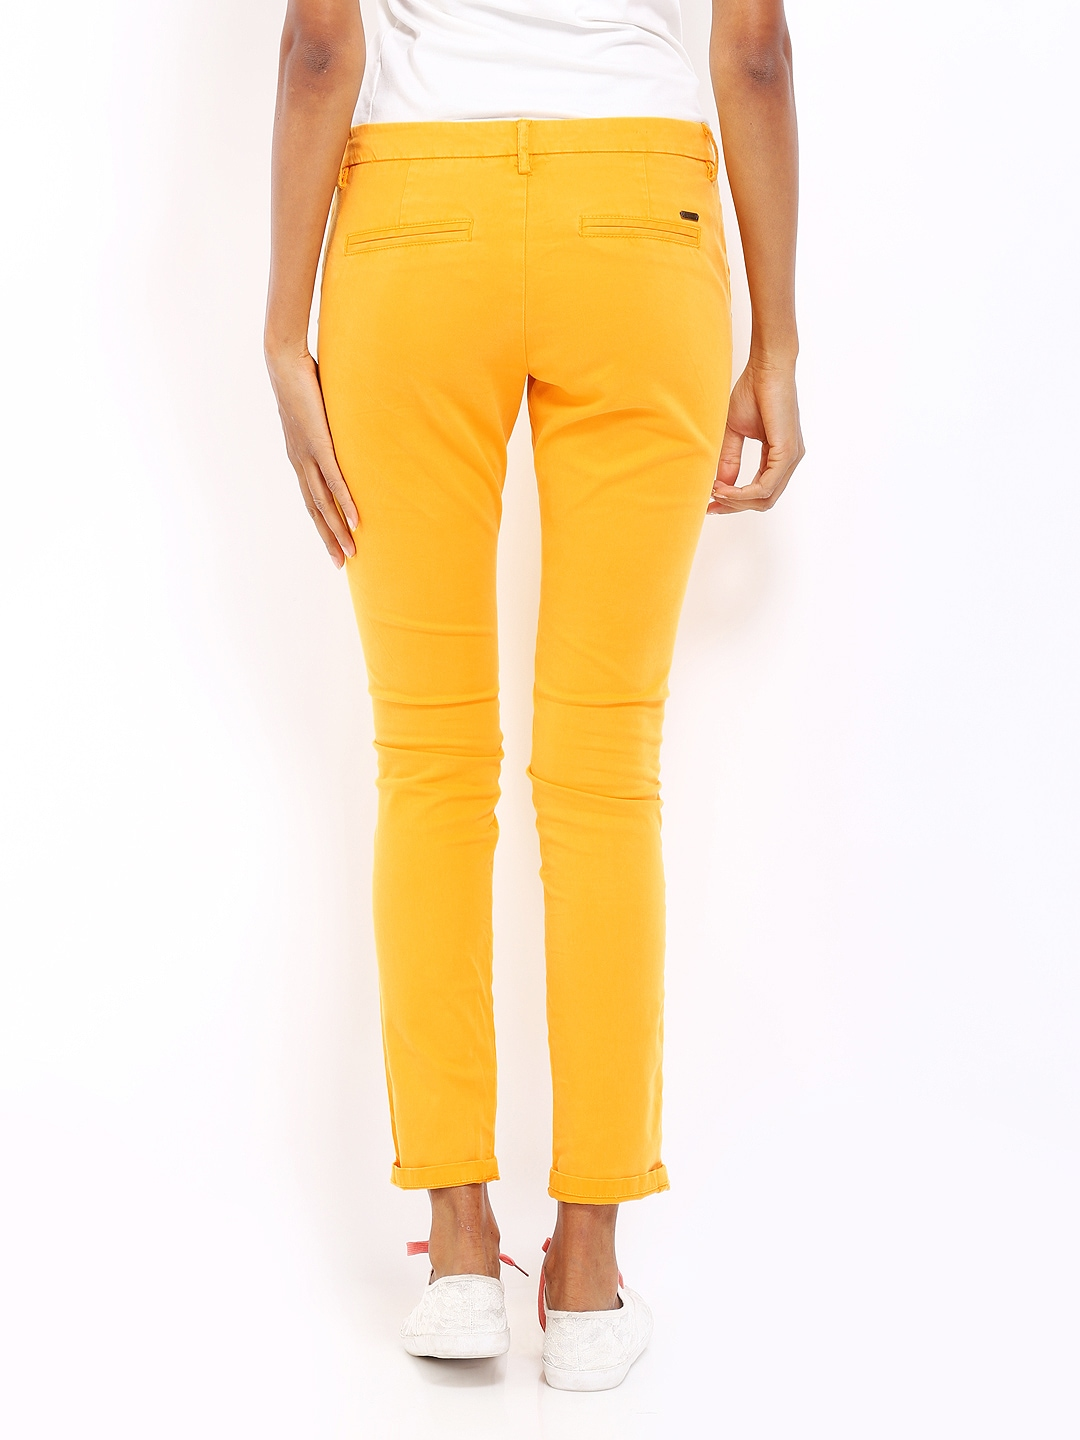 For women, yellow pants are a serious statement shade that attracts attention and exudes happiness and optimism. Yellow pants are a fun way to play with bright summer hues and a great way to add a pop of yellow to your summer outfit.